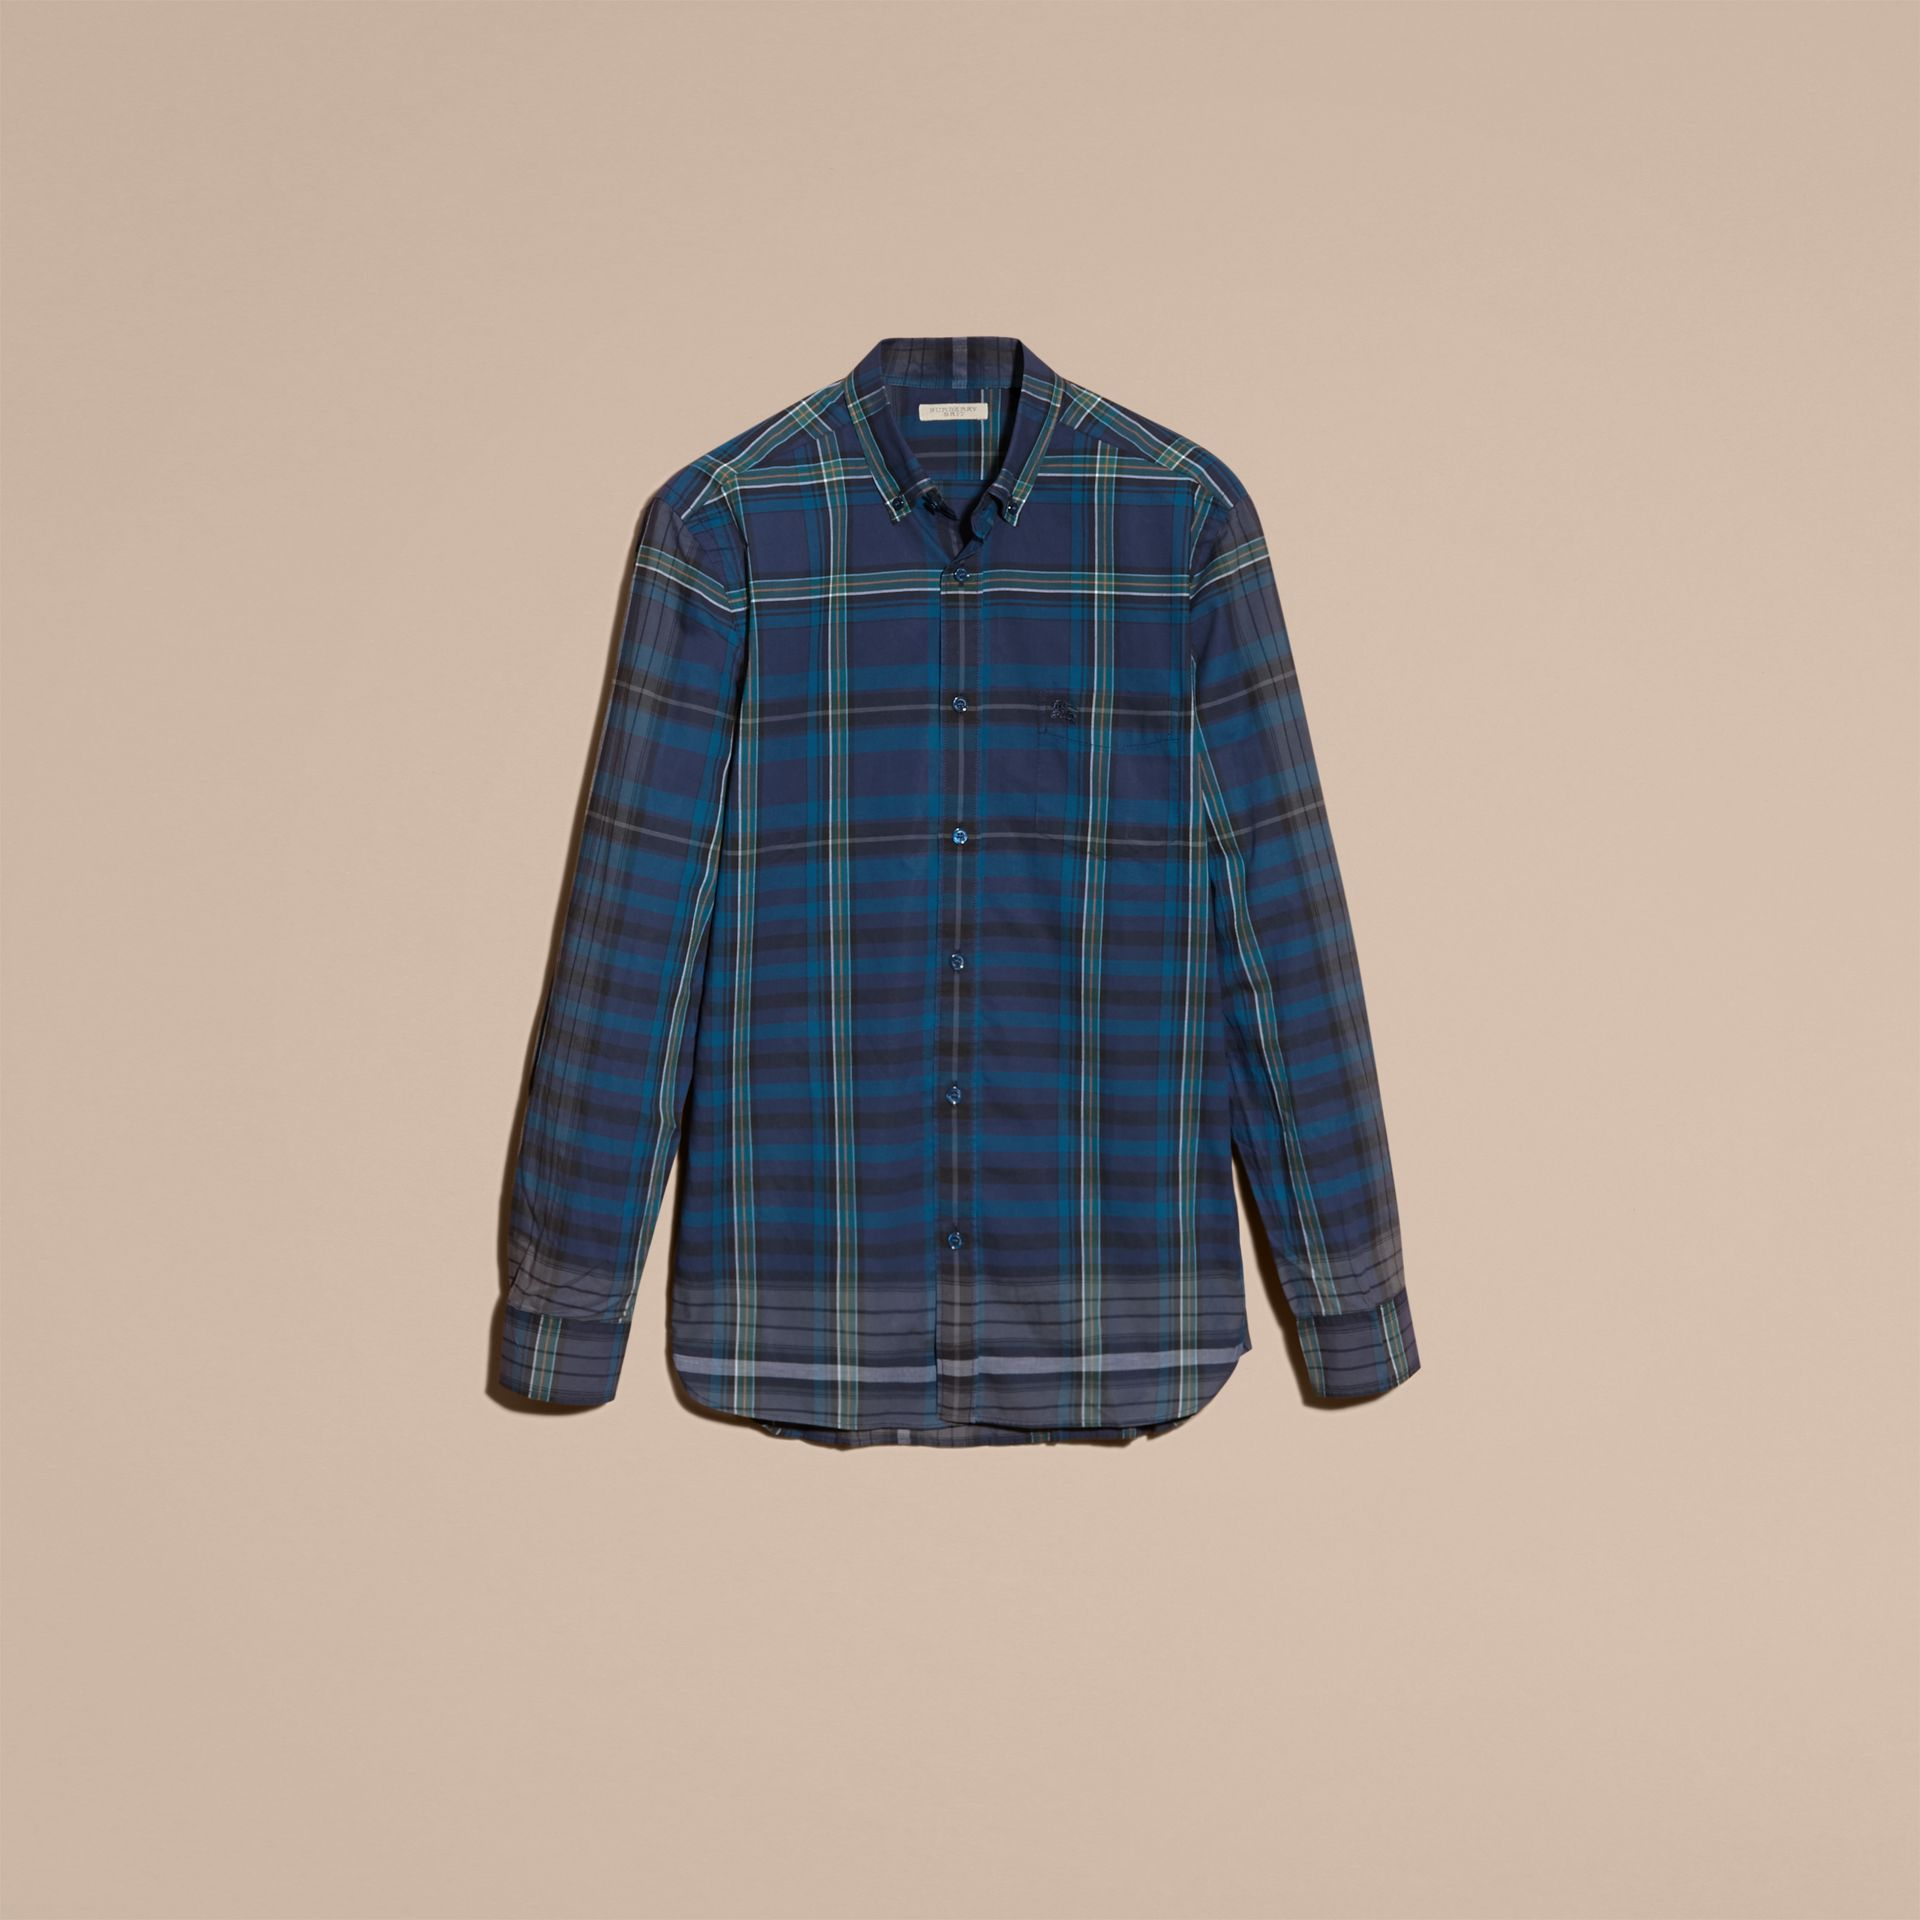 Indigo Button-down Collar Check Cotton Shirt Indigo - gallery image 4